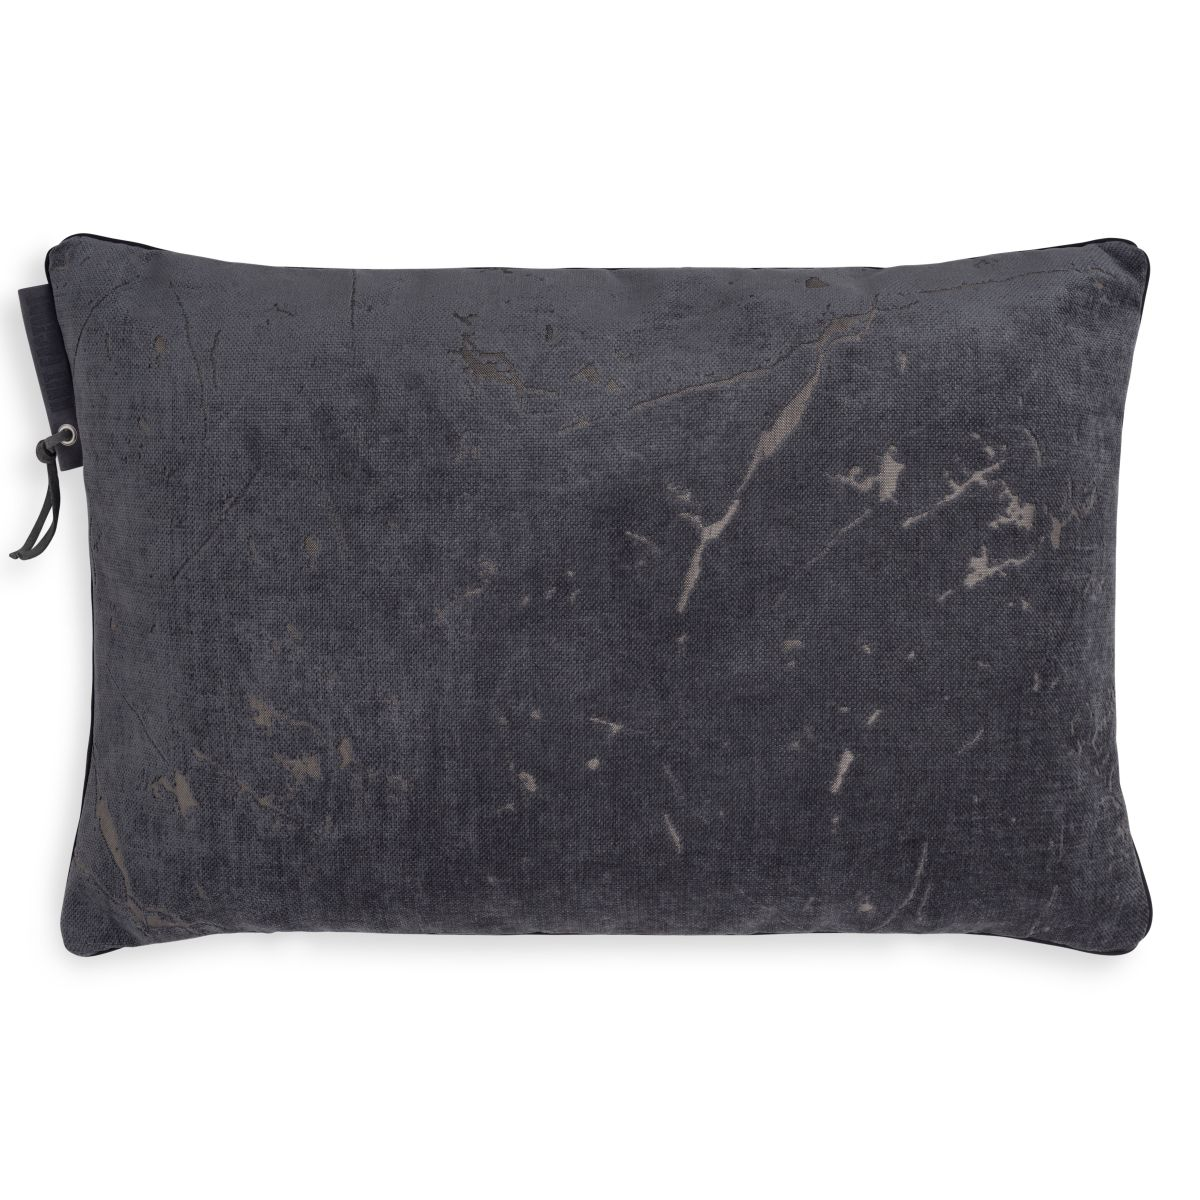 james cushion anthracite 60x40